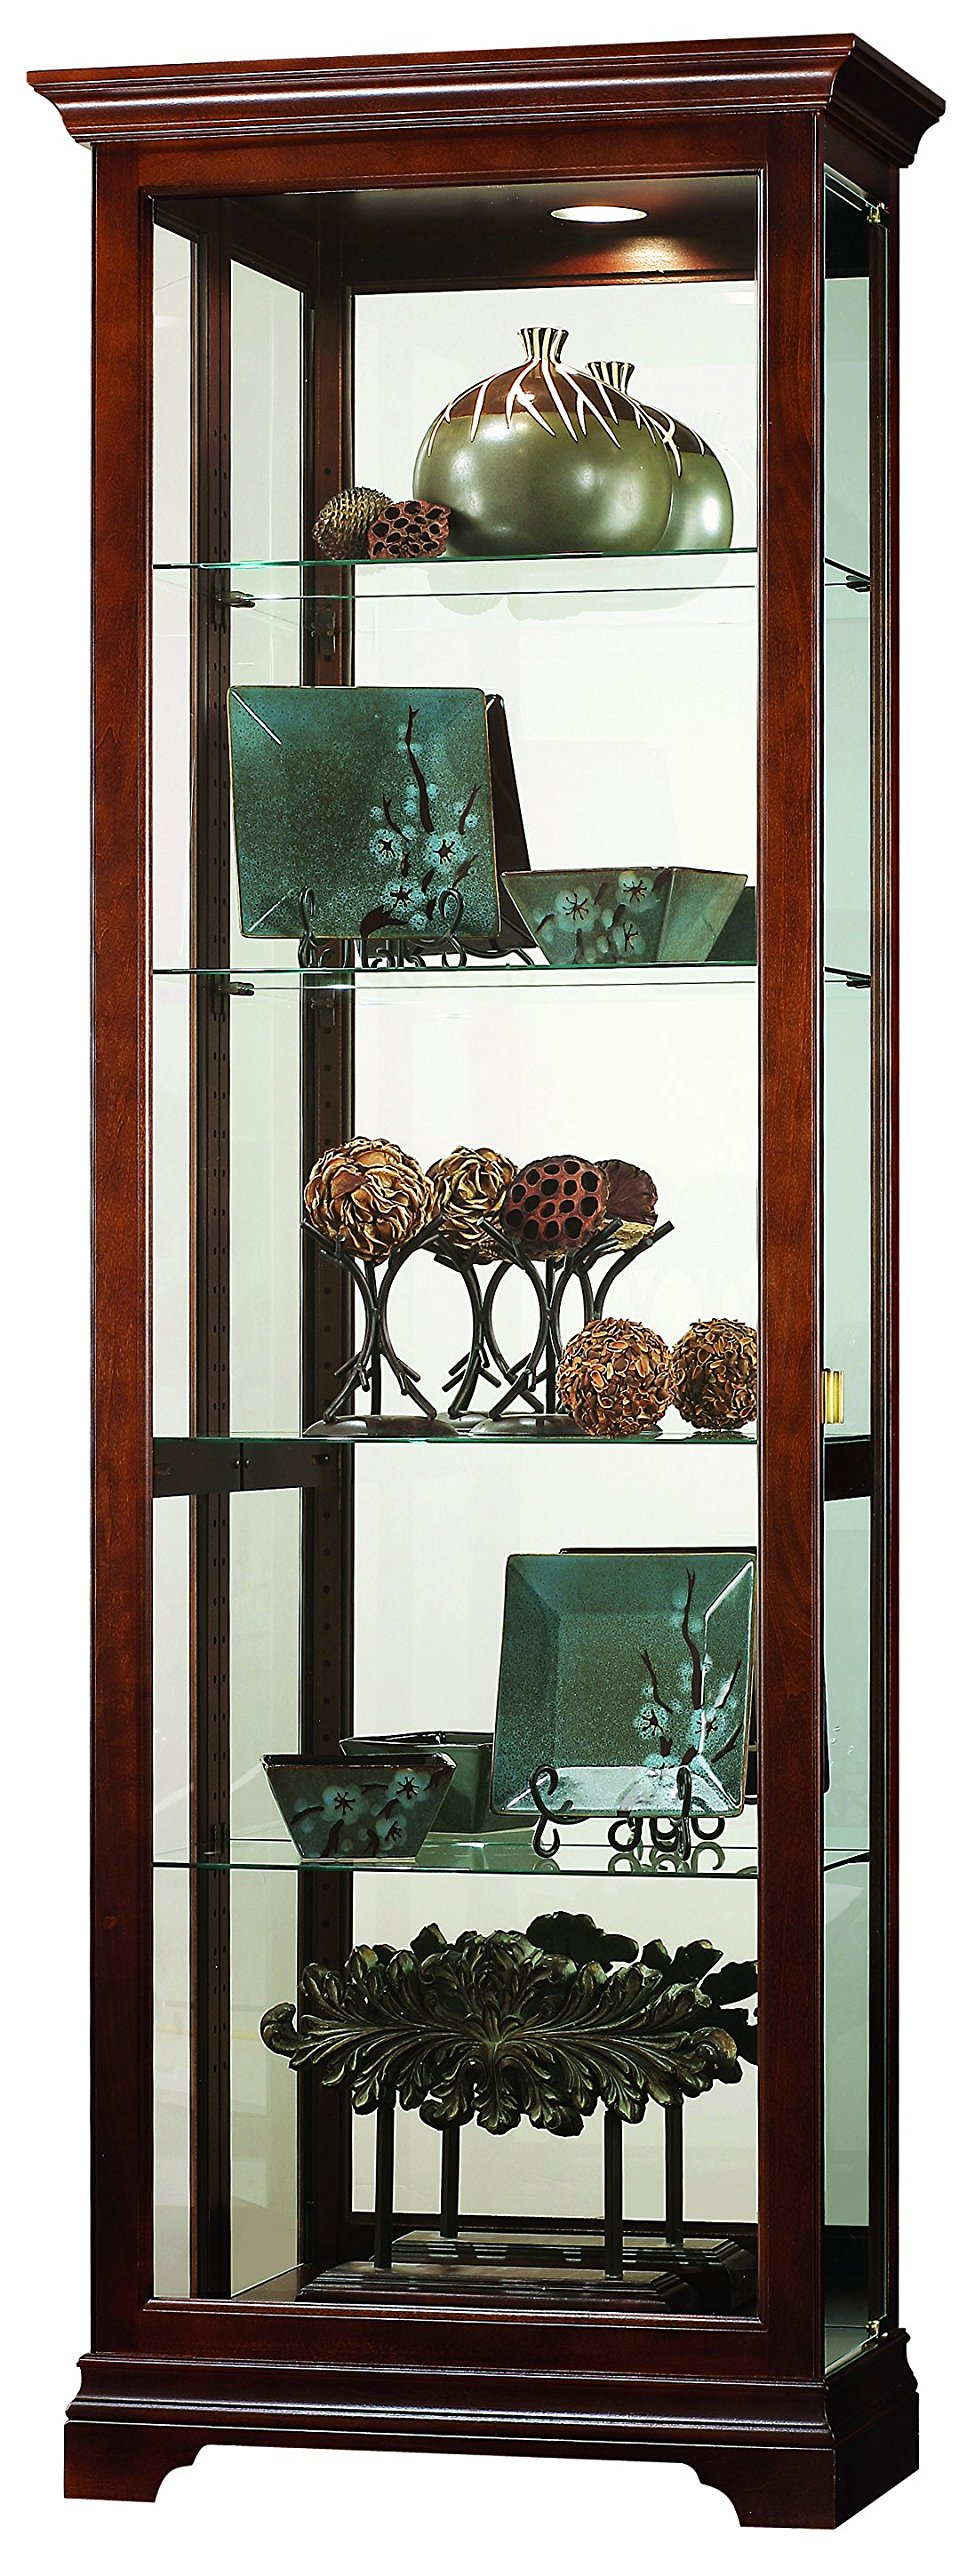 Howard Miller 680521 Elise Display Cabinet